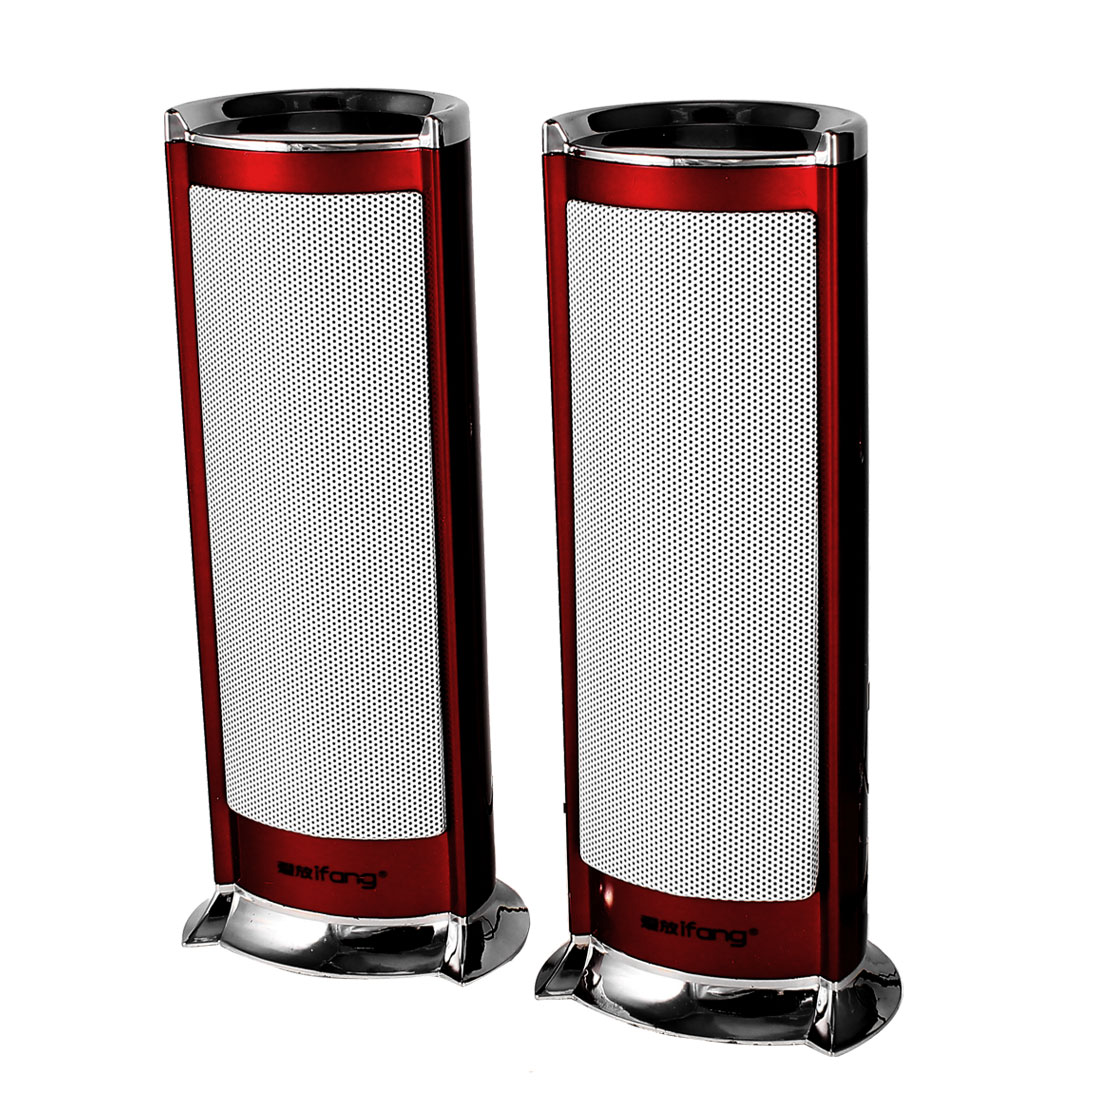 Silver Tone Red Cylindrical PC Laptop Volume Control USB 2.0 Mini Speaker Box